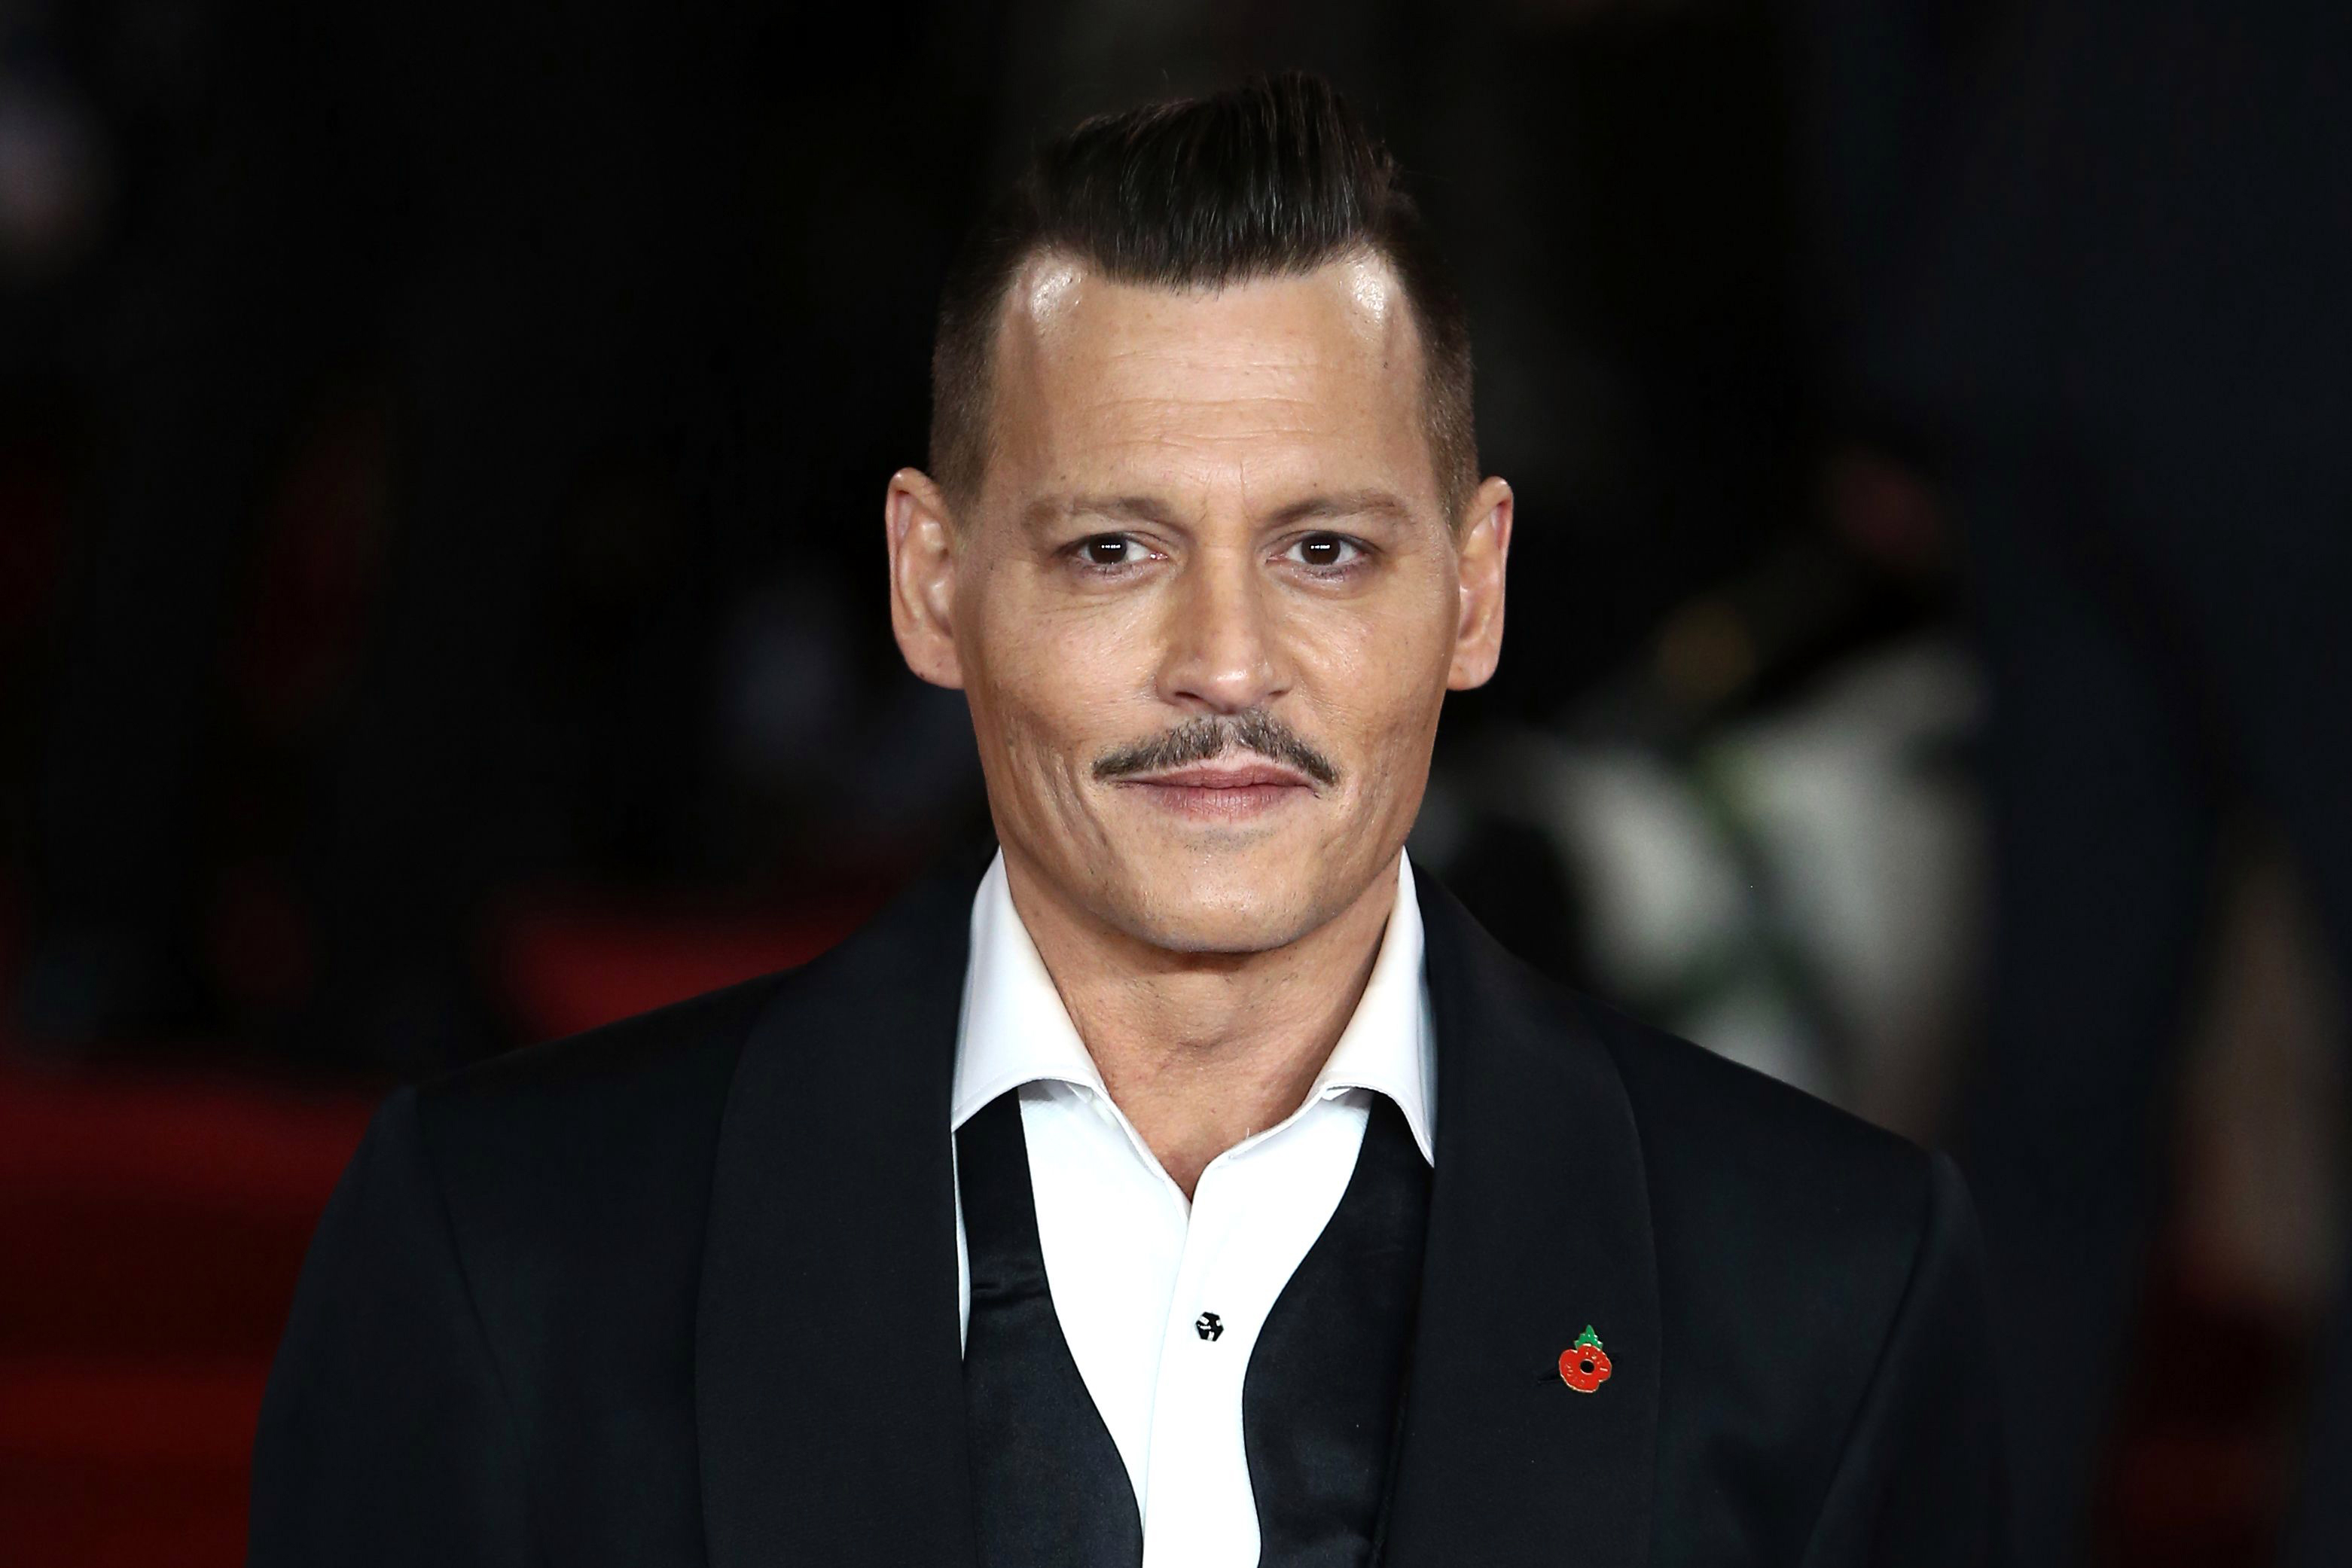 Johnny DeppMurder on the Orient Express world premiere in London, United Kingdom - 02 Nov 2017US actor/cast member Johnny Depp arrives at the for the world premiere of 'Murder on the Orient Express' at the Royal Albert Hall in Central London, Britain, 02 November 2017. The movie opens in theaters on 03 November.